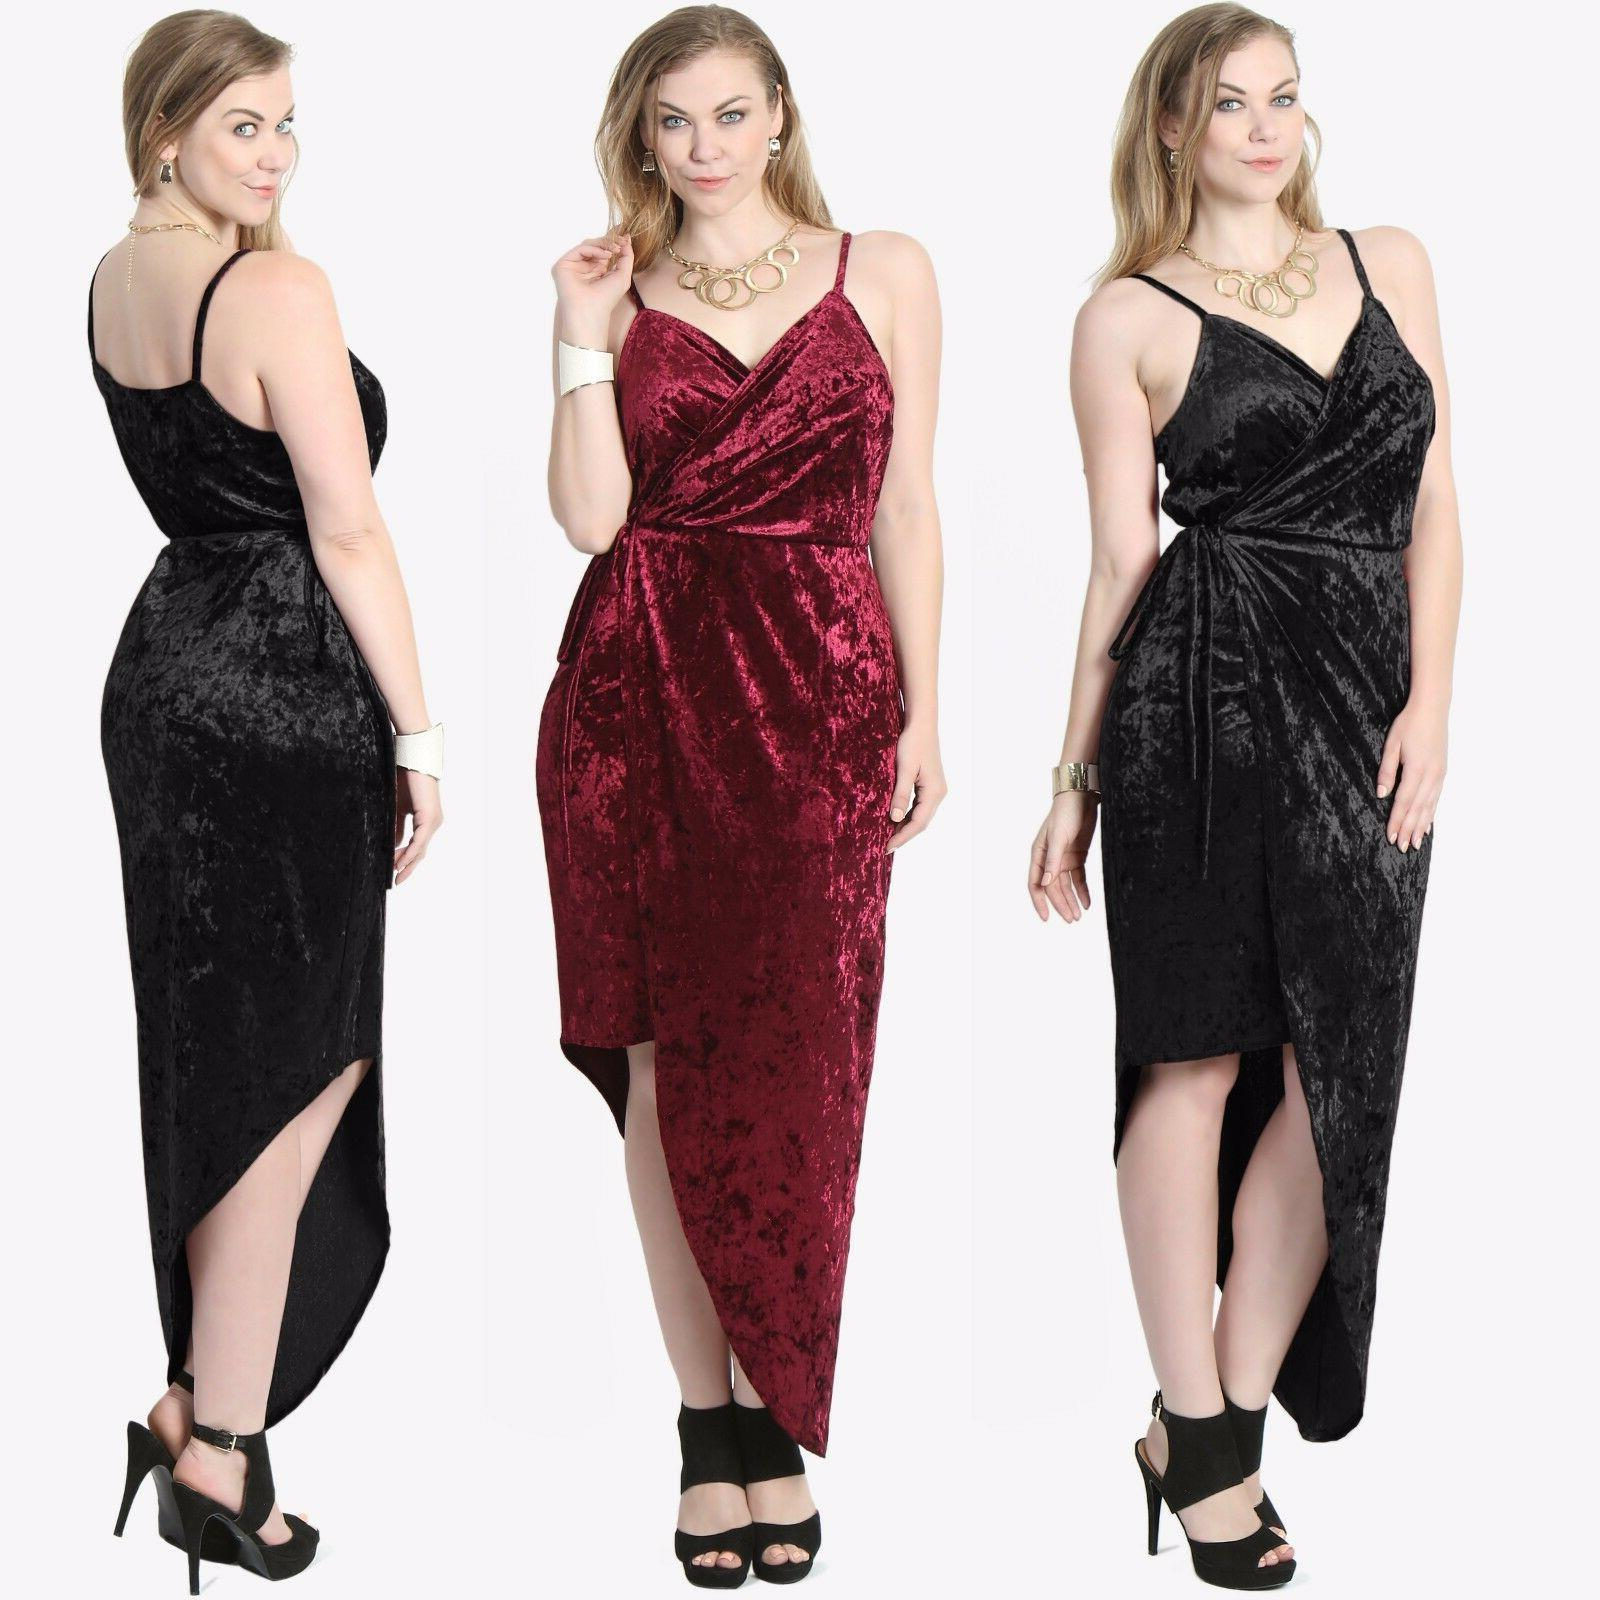 TheMogan PLUS Velvet Plunge V-Neck Strappy High Low Night Co